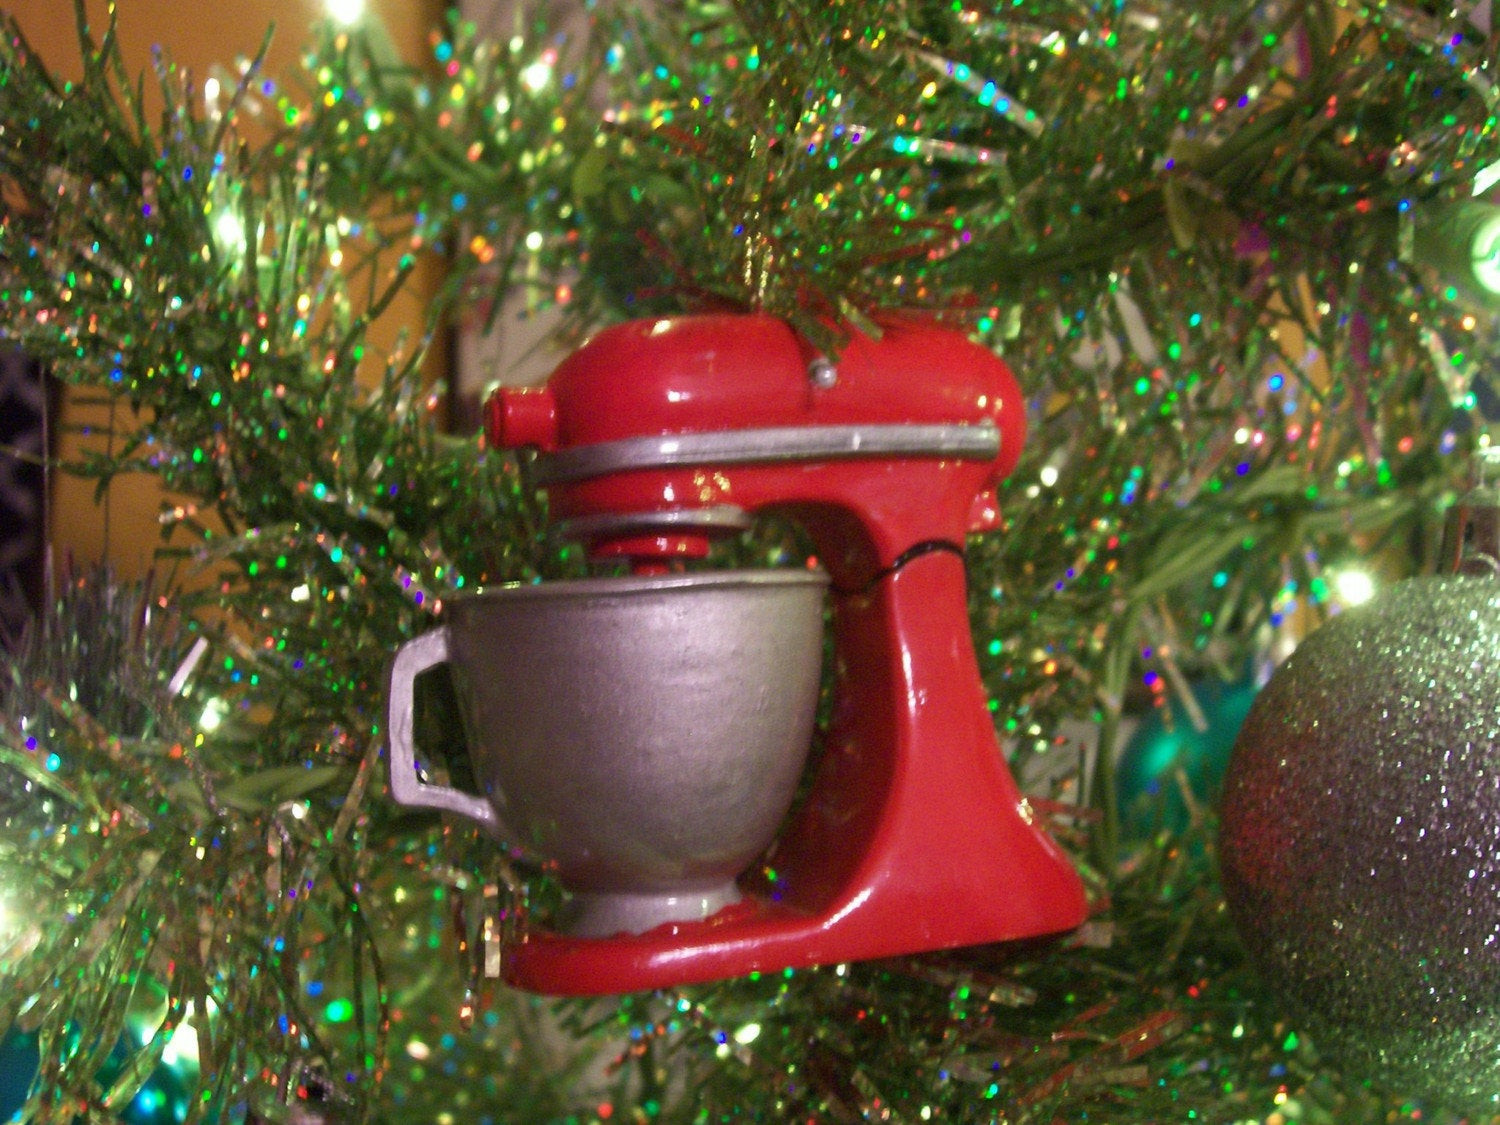 Kitchen Christmas Ornament  Unavailable Listing on Etsy